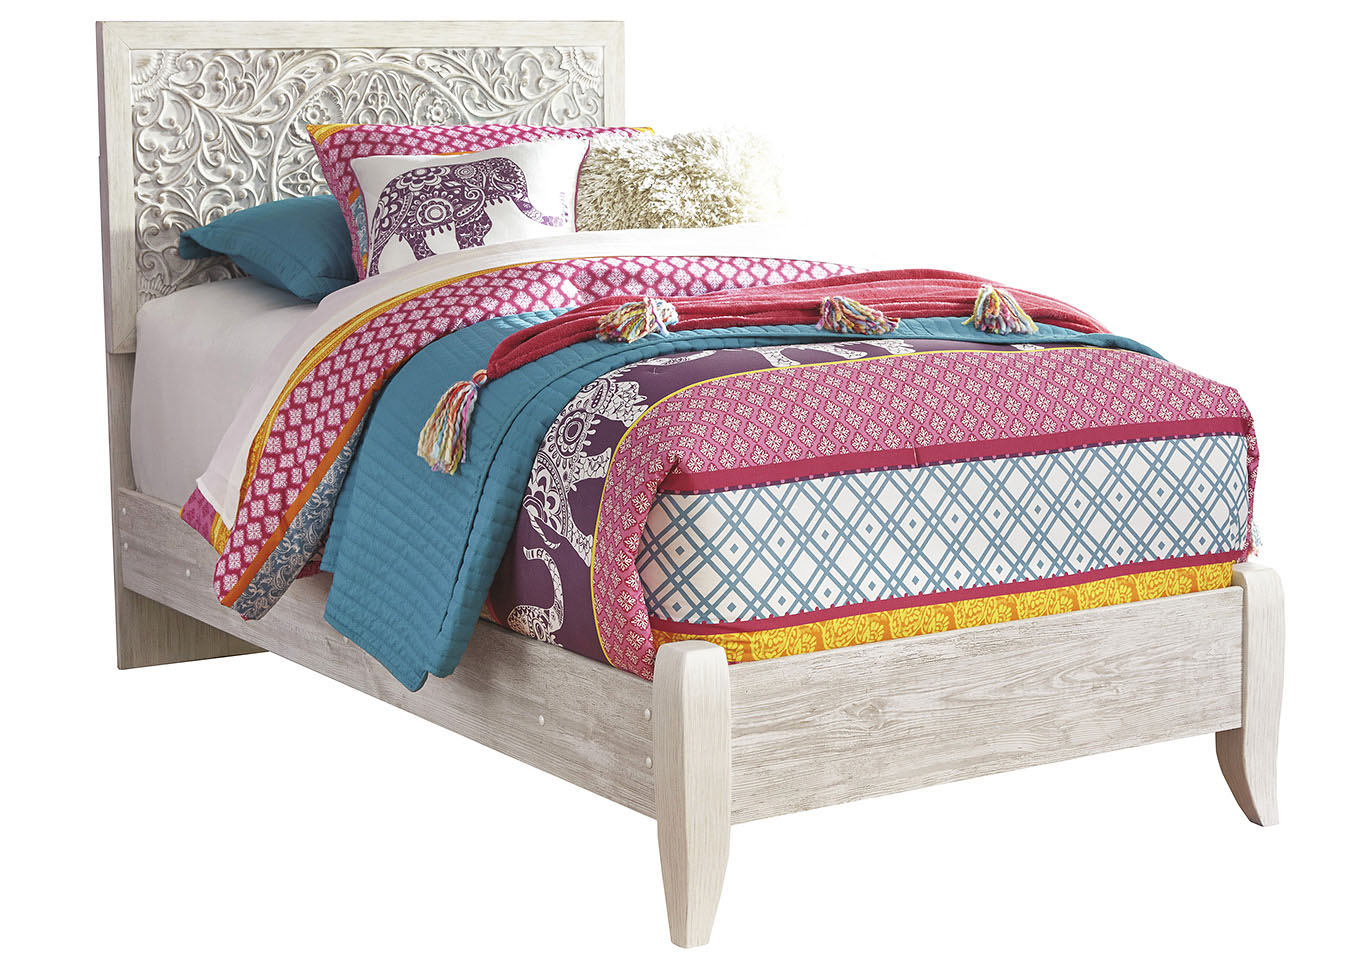 Paxberry Whitewash Twin Panel Bed,Signature Design By Ashley